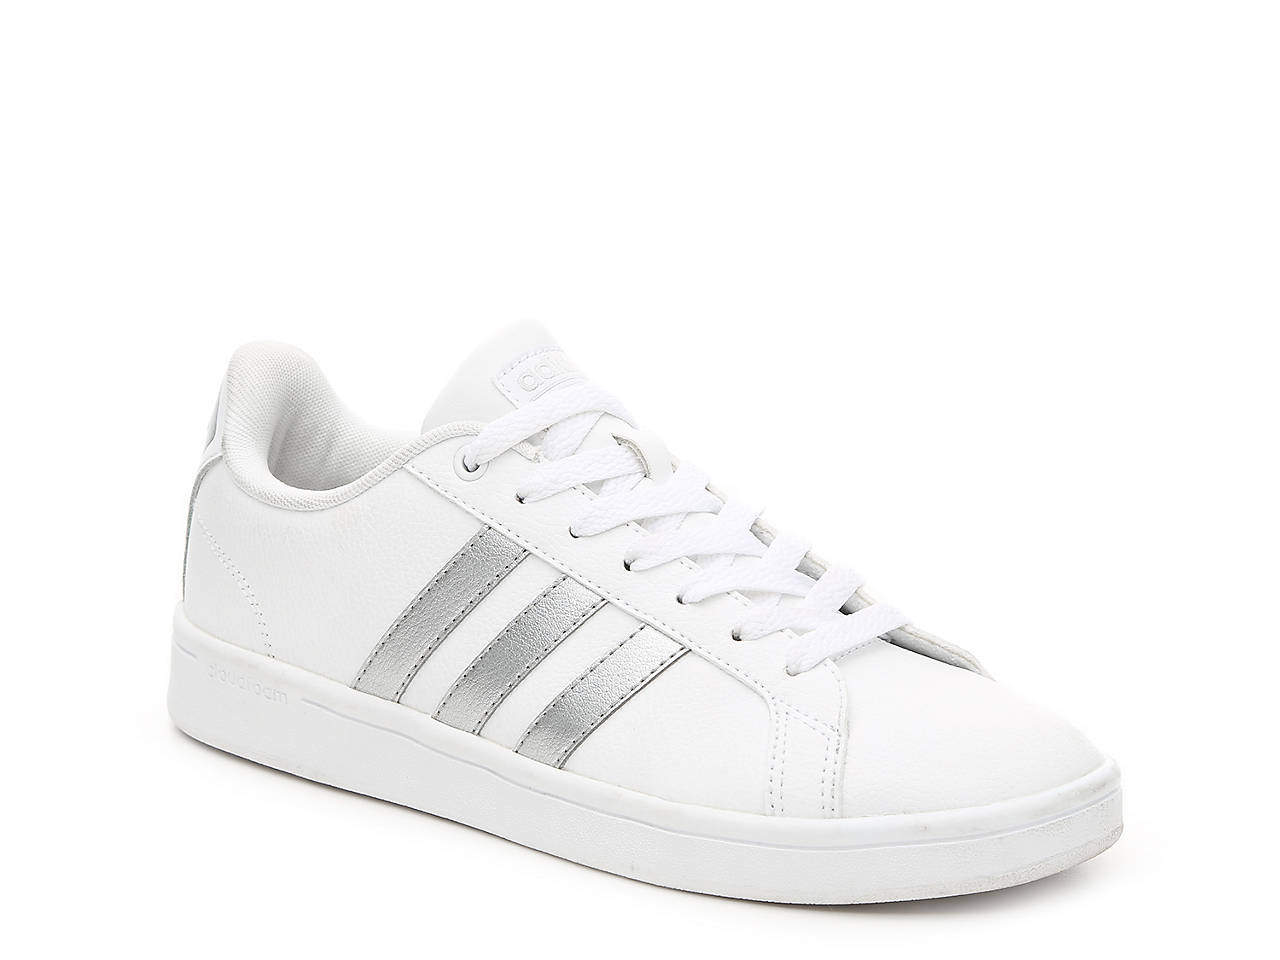 adidas Advantage Sneaker - Women s Women s Shoes  8ec58004c